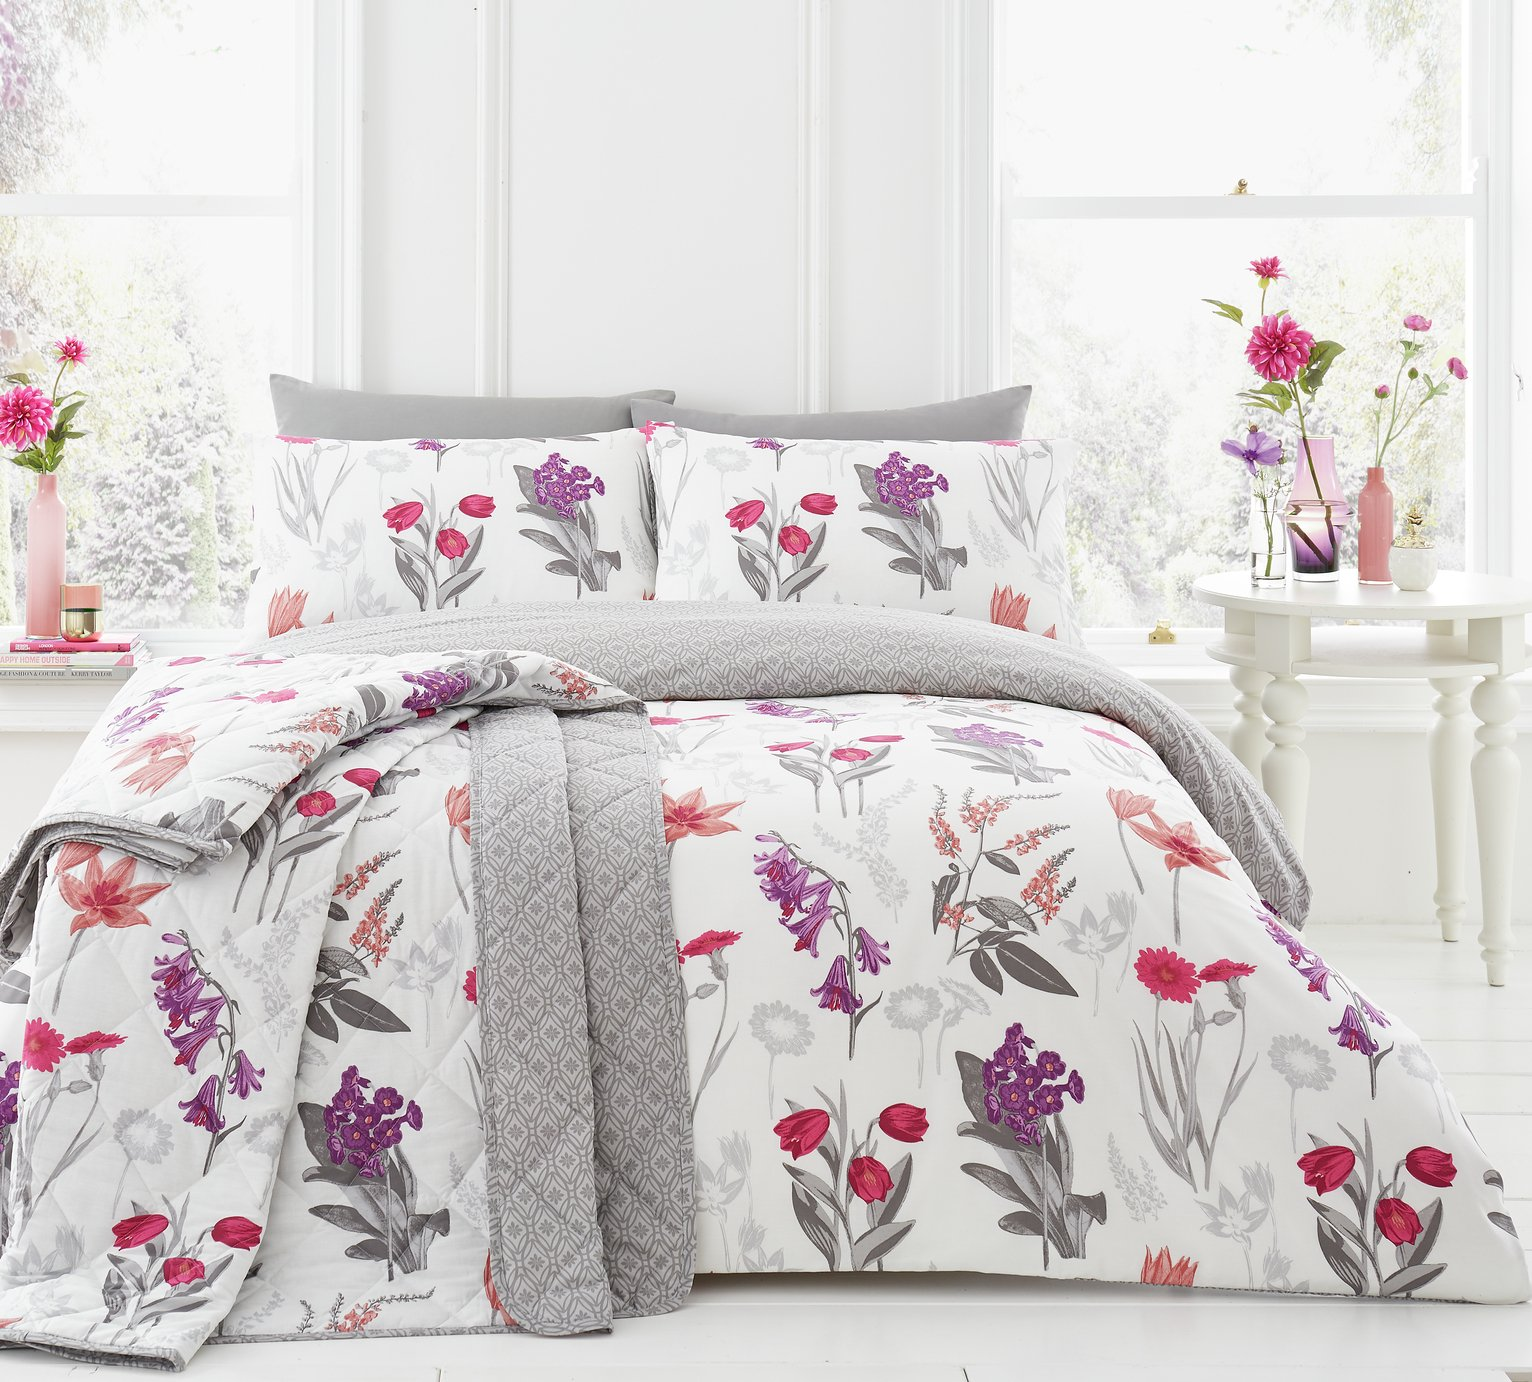 Dreams N Drapes Ingrid Blush Duvet Cover Set - Kingsize